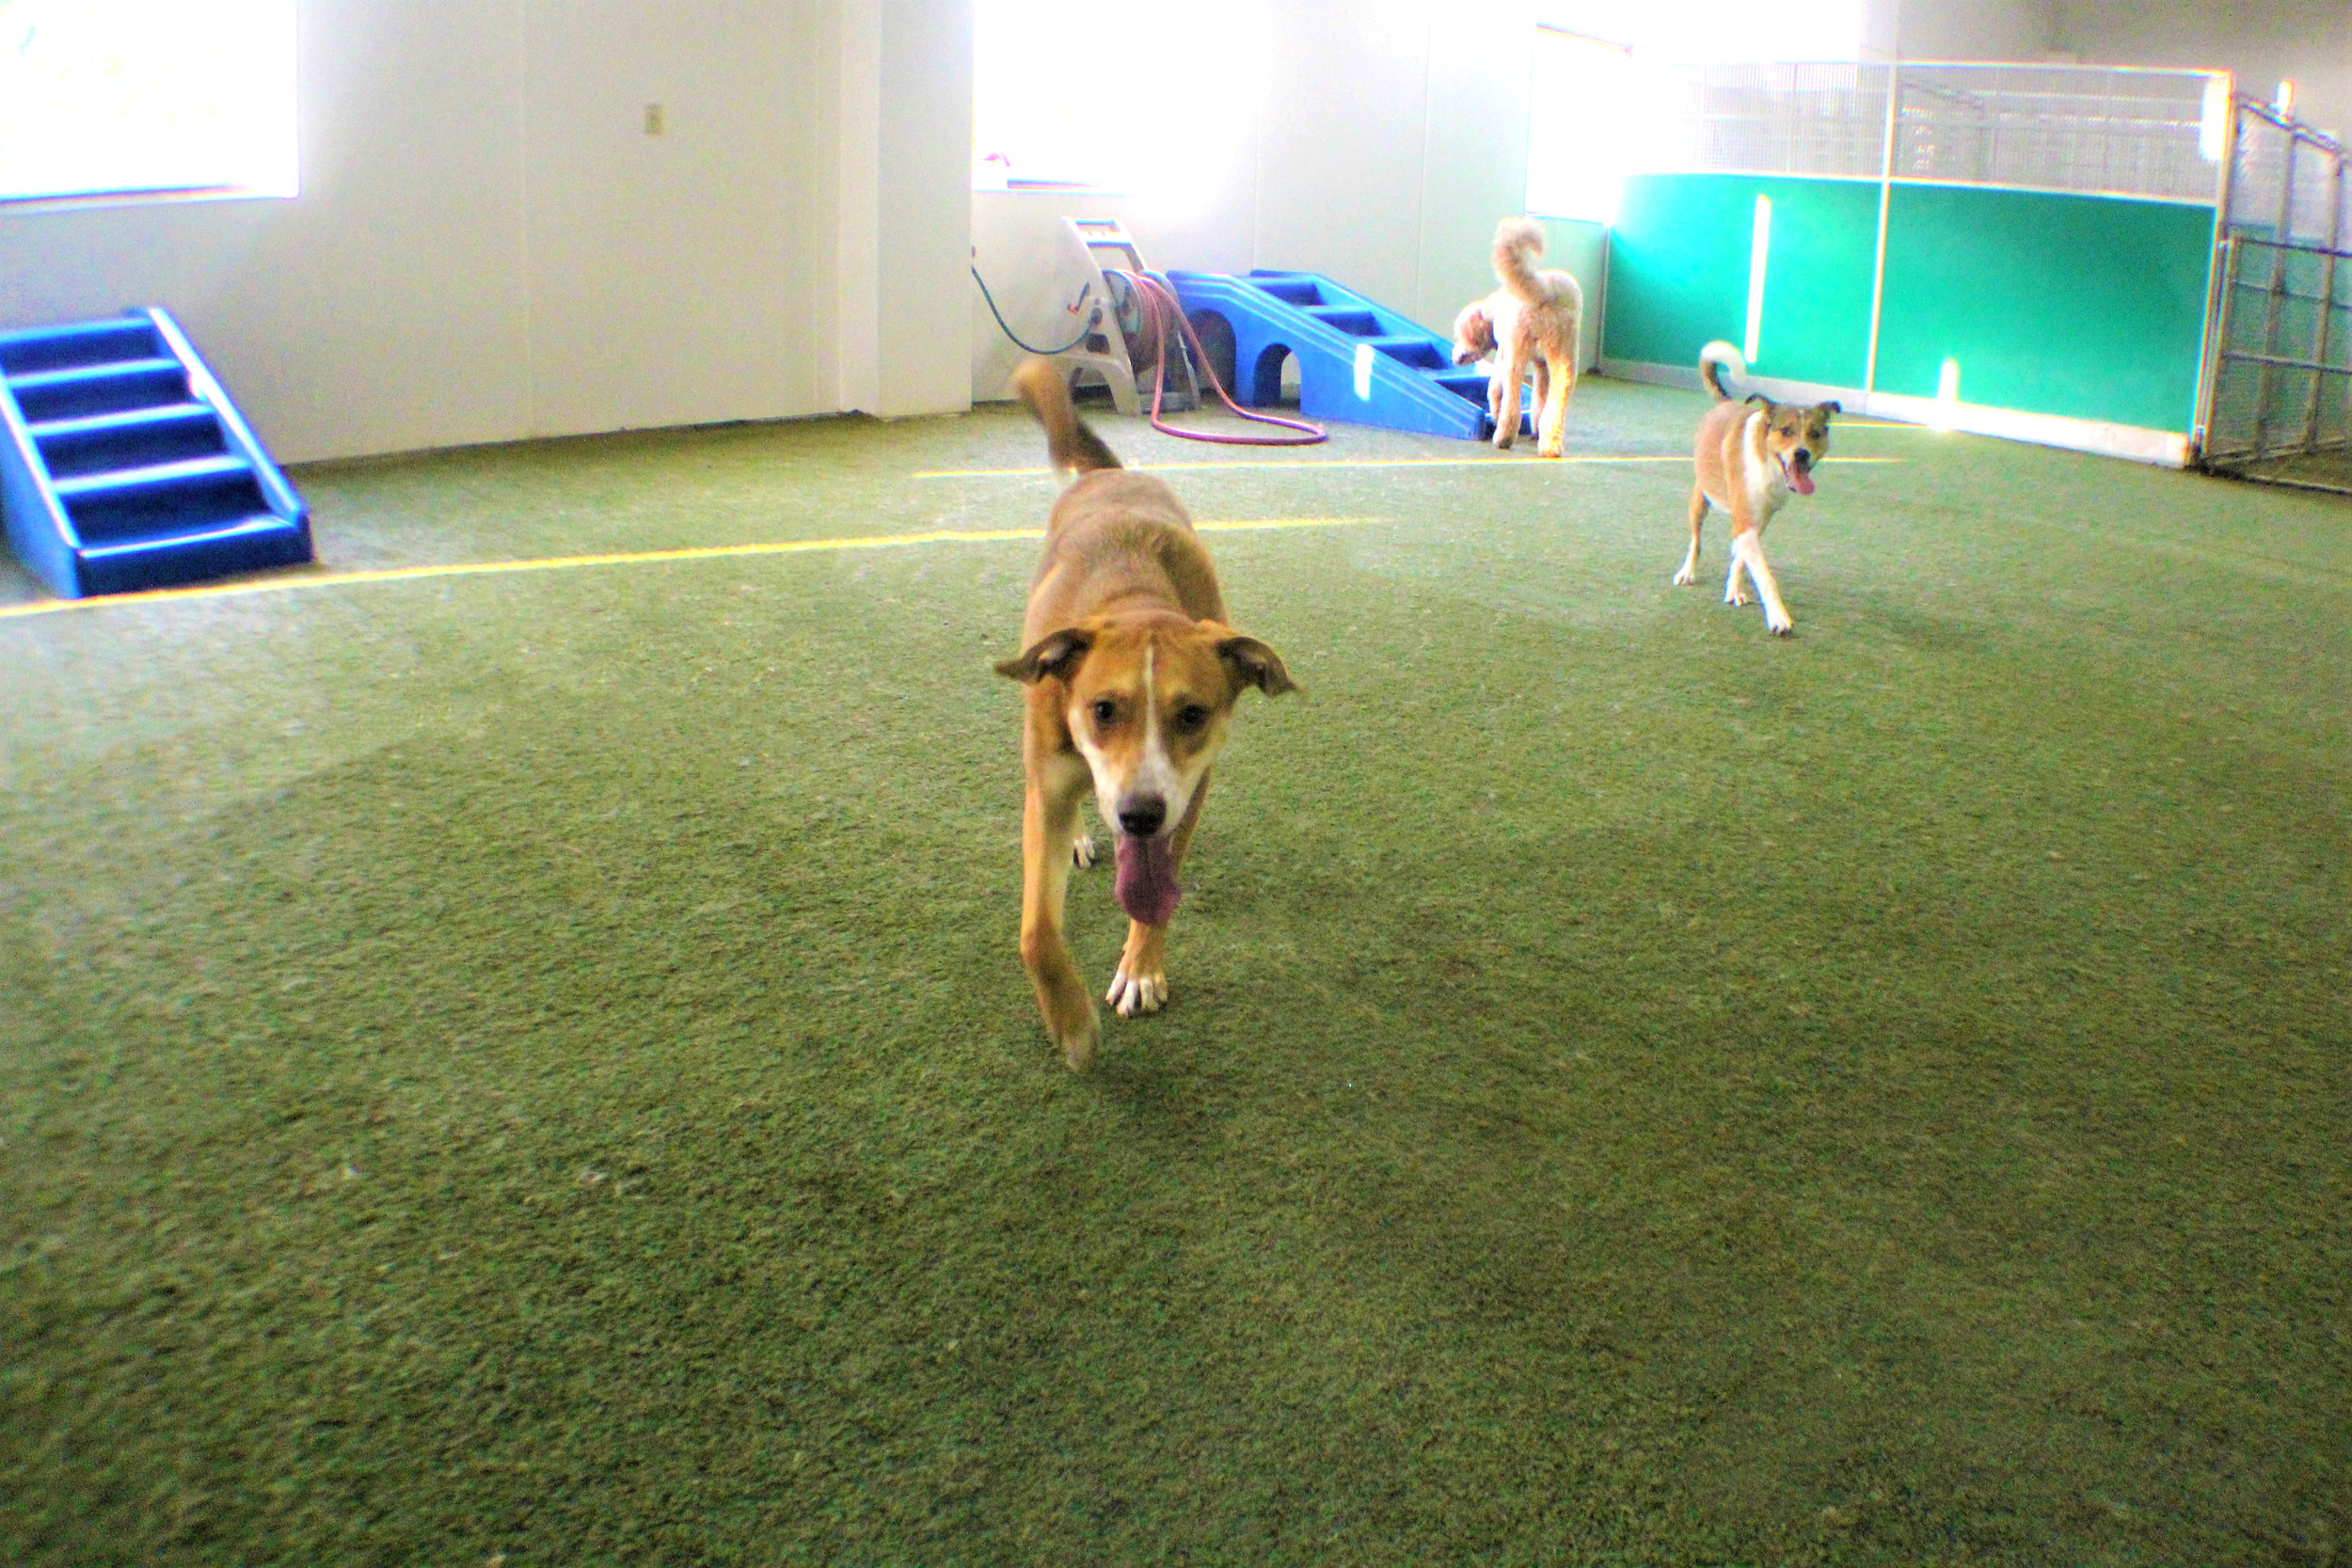 When Maddie comes to Pet Nation Lodge she always has friends to play with. She is a very social dog and gets along with almost every one of our daycare or boarding dogs. She's definitely the cool kid in school.